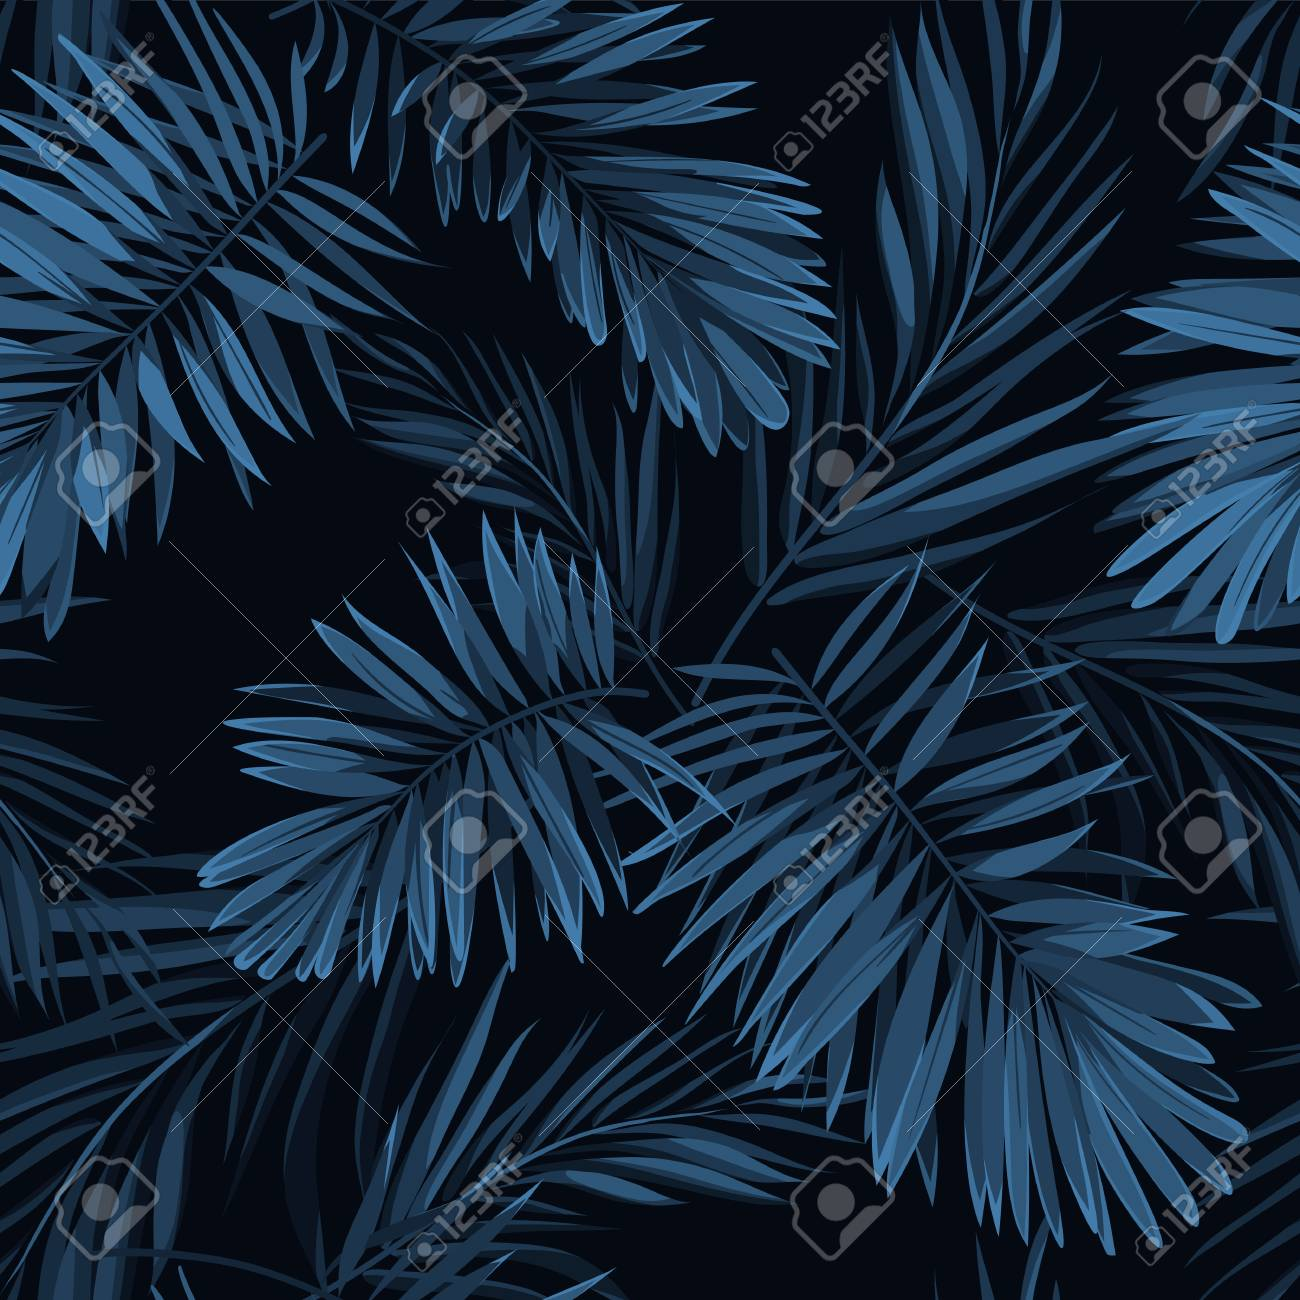 Seamless Vector Indigo Blue Pattern With Monstera Palm Leaves Royalty Free Cliparts Vectors And Stock Illustration Image 73546132 Green and blue leaves art. seamless vector indigo blue pattern with monstera palm leaves